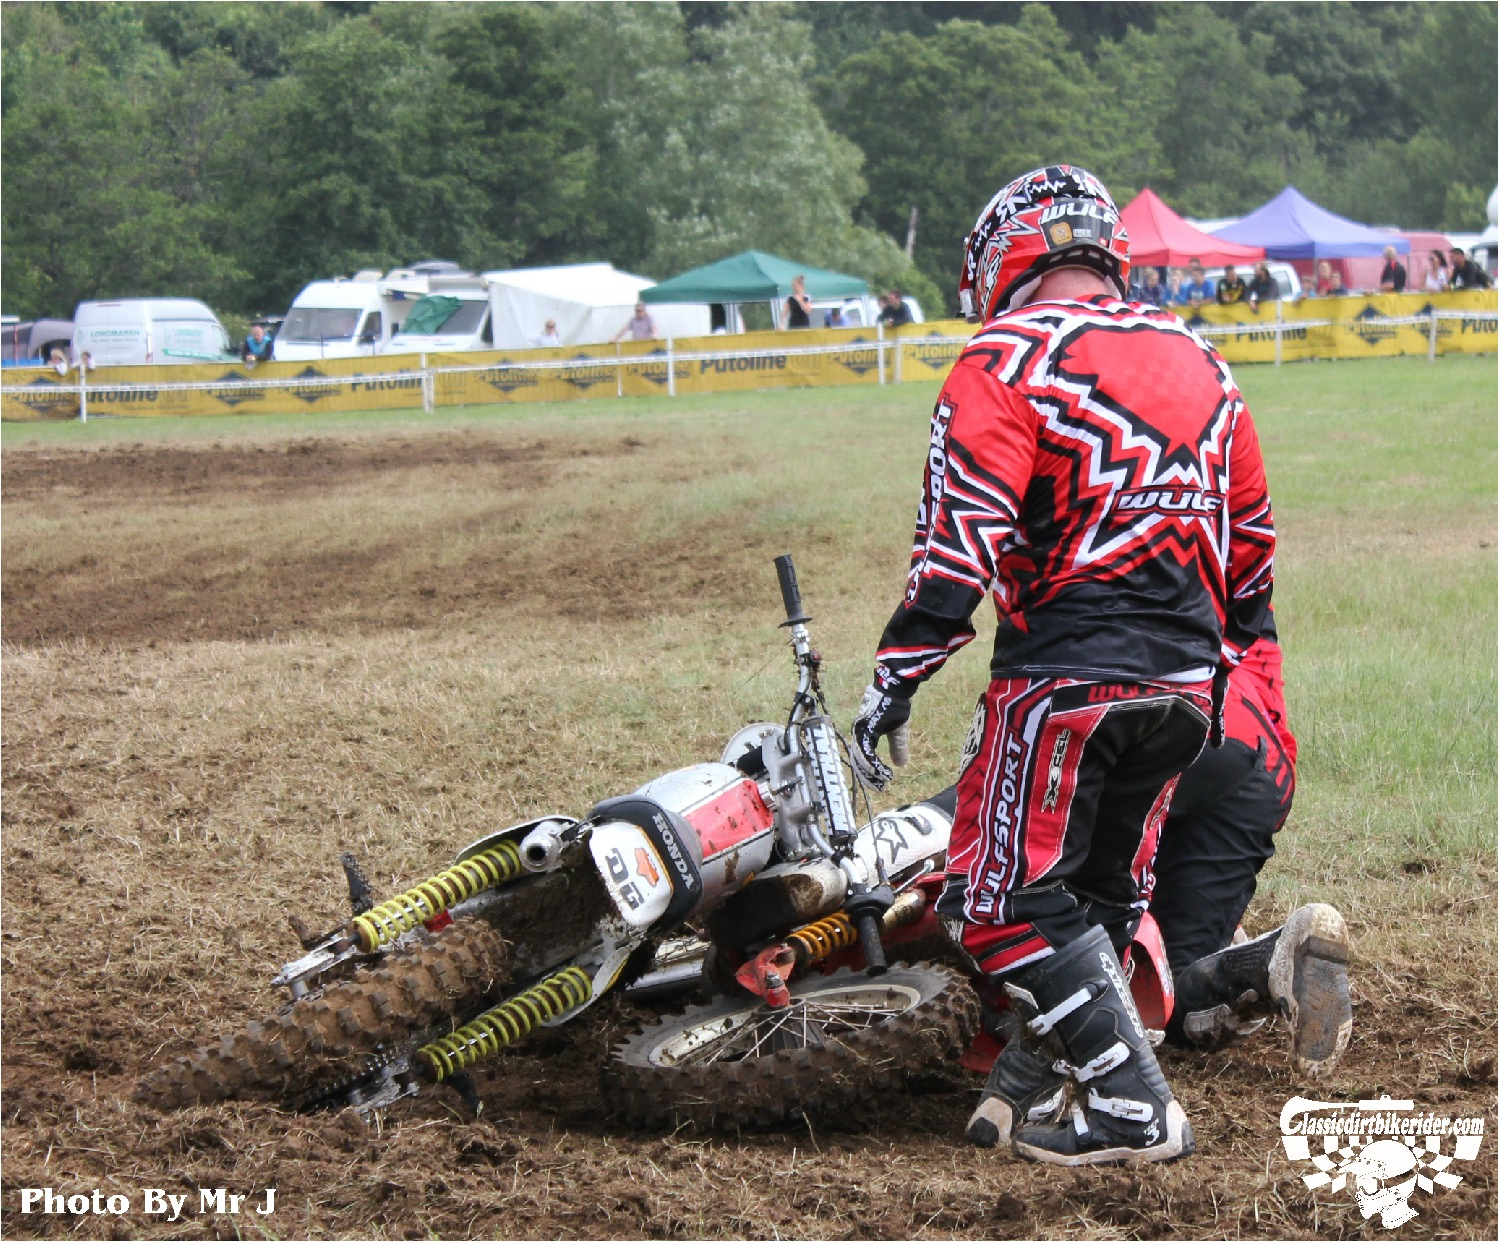 king of the castle 2015 photos Farleigh Castle twinshock motocross classicdirtbikerider.com 33